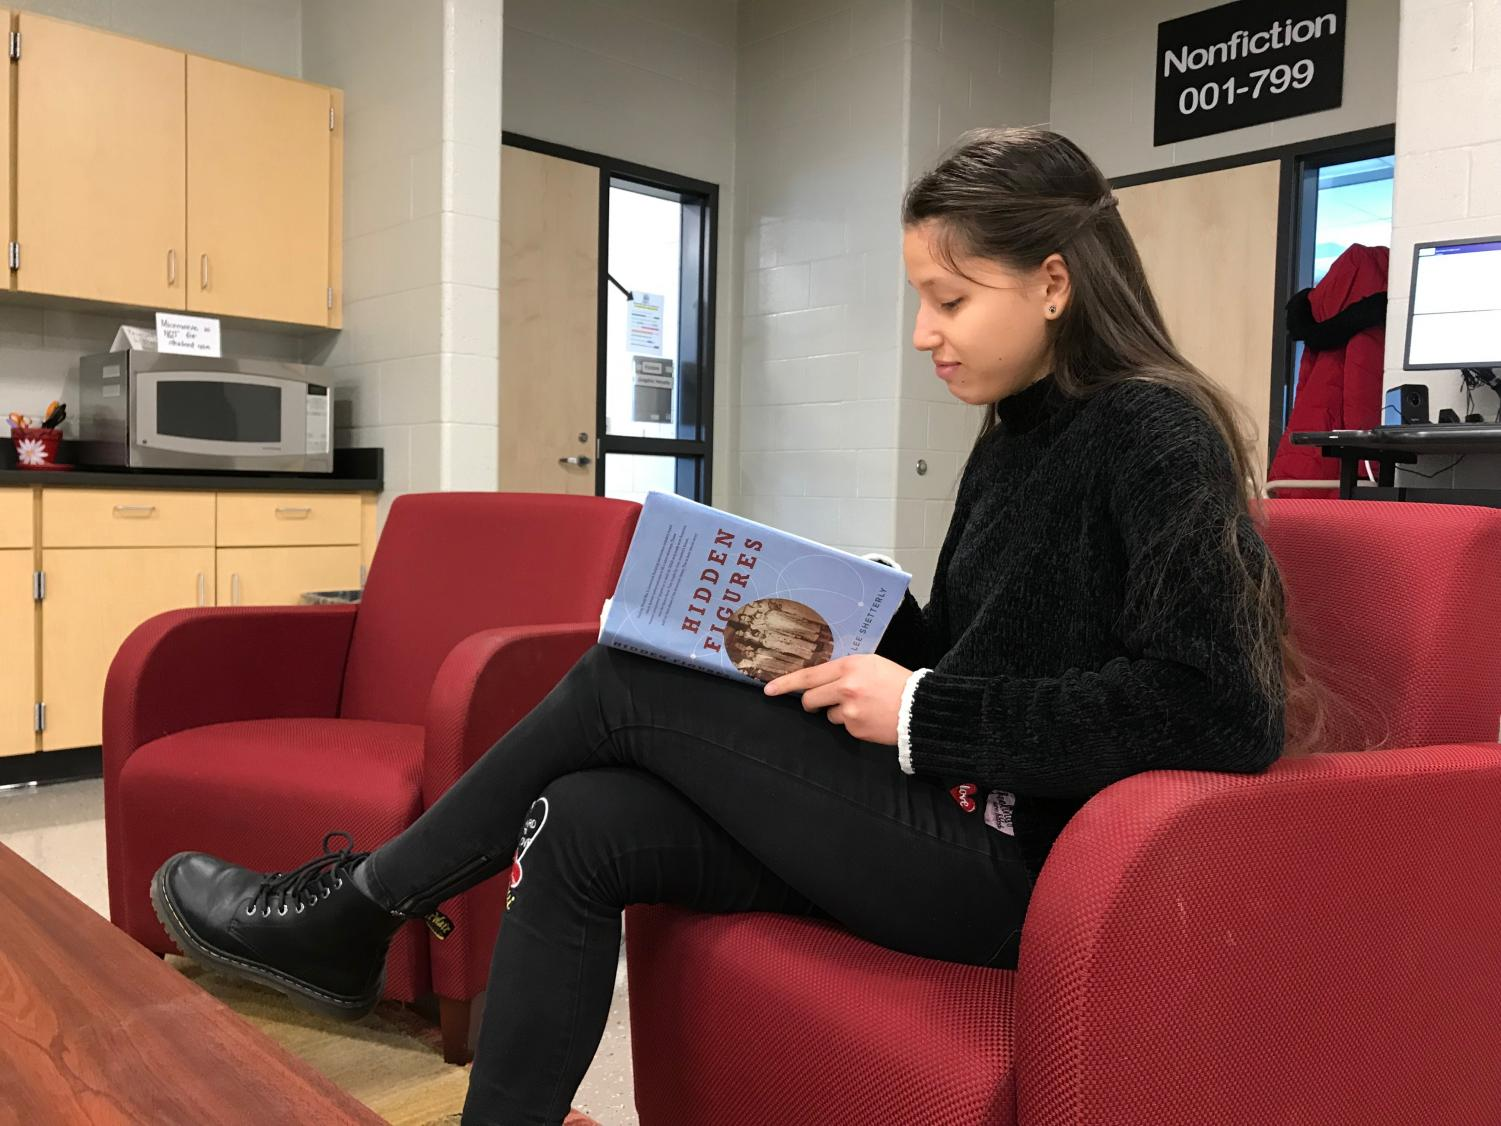 Freshman Arina Kuzina read the book Hidden Figures by Margot Lee Shetterly in honor of the Black History Month.